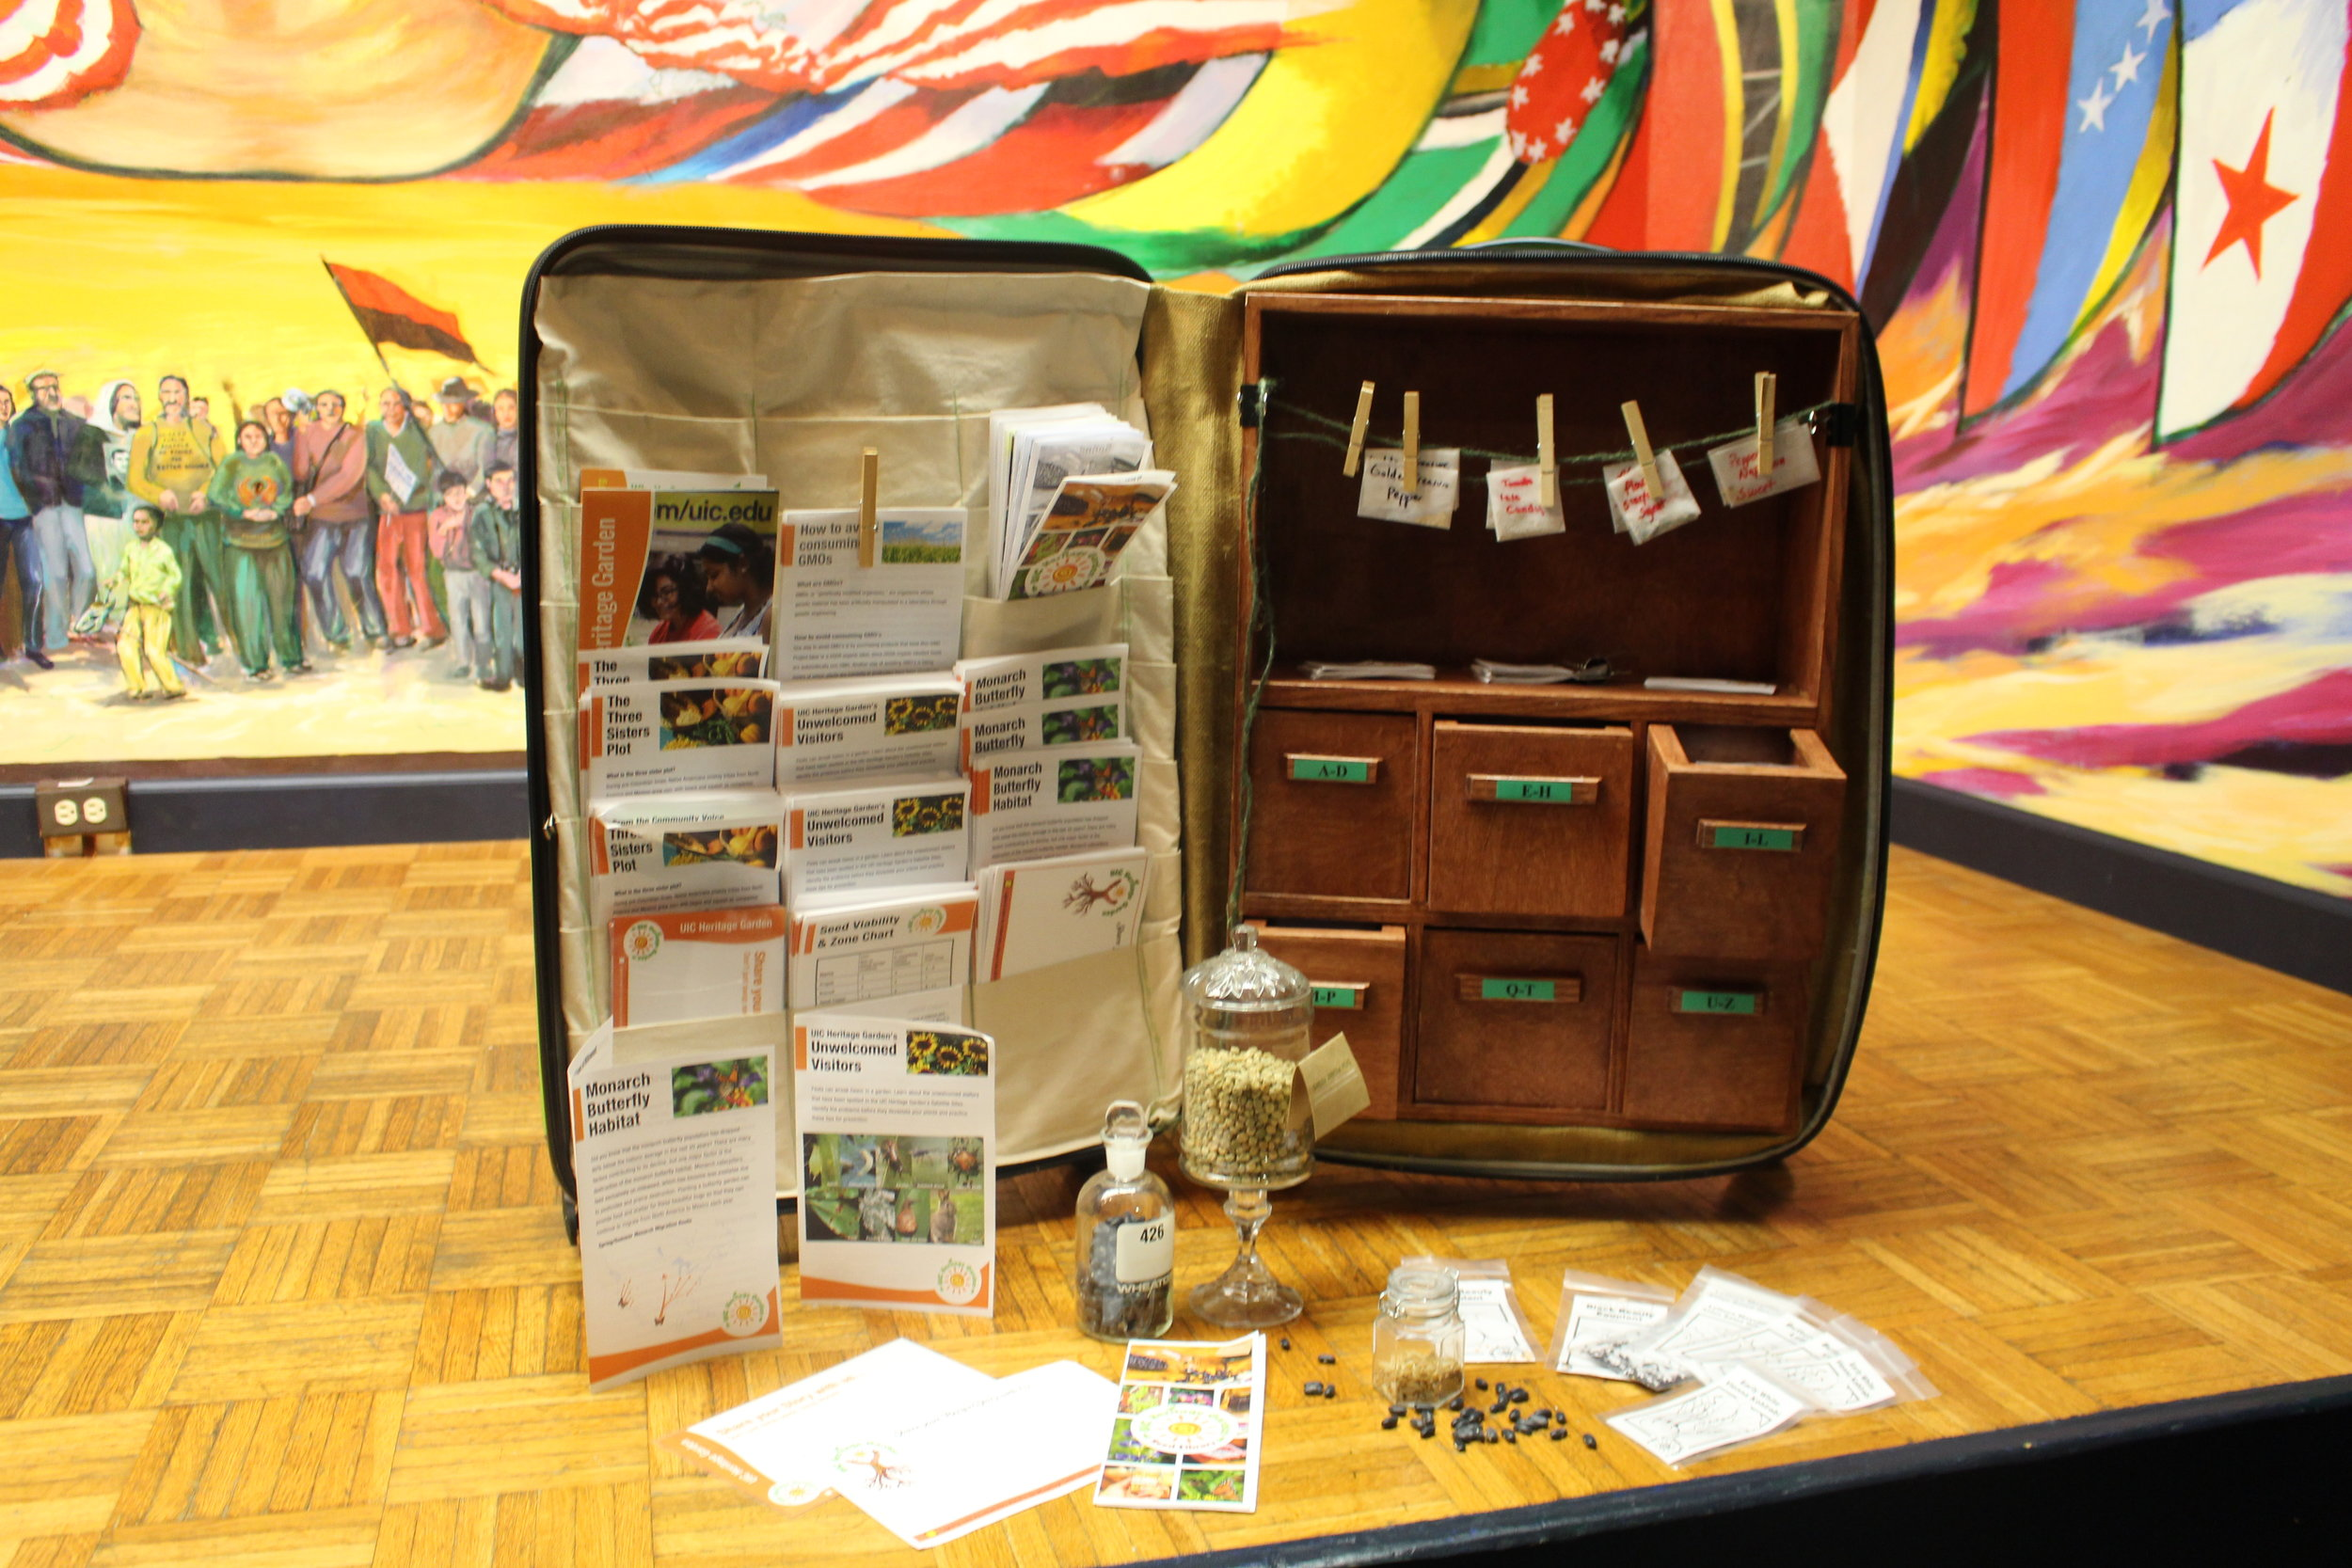 another angle of the suitcase seed library